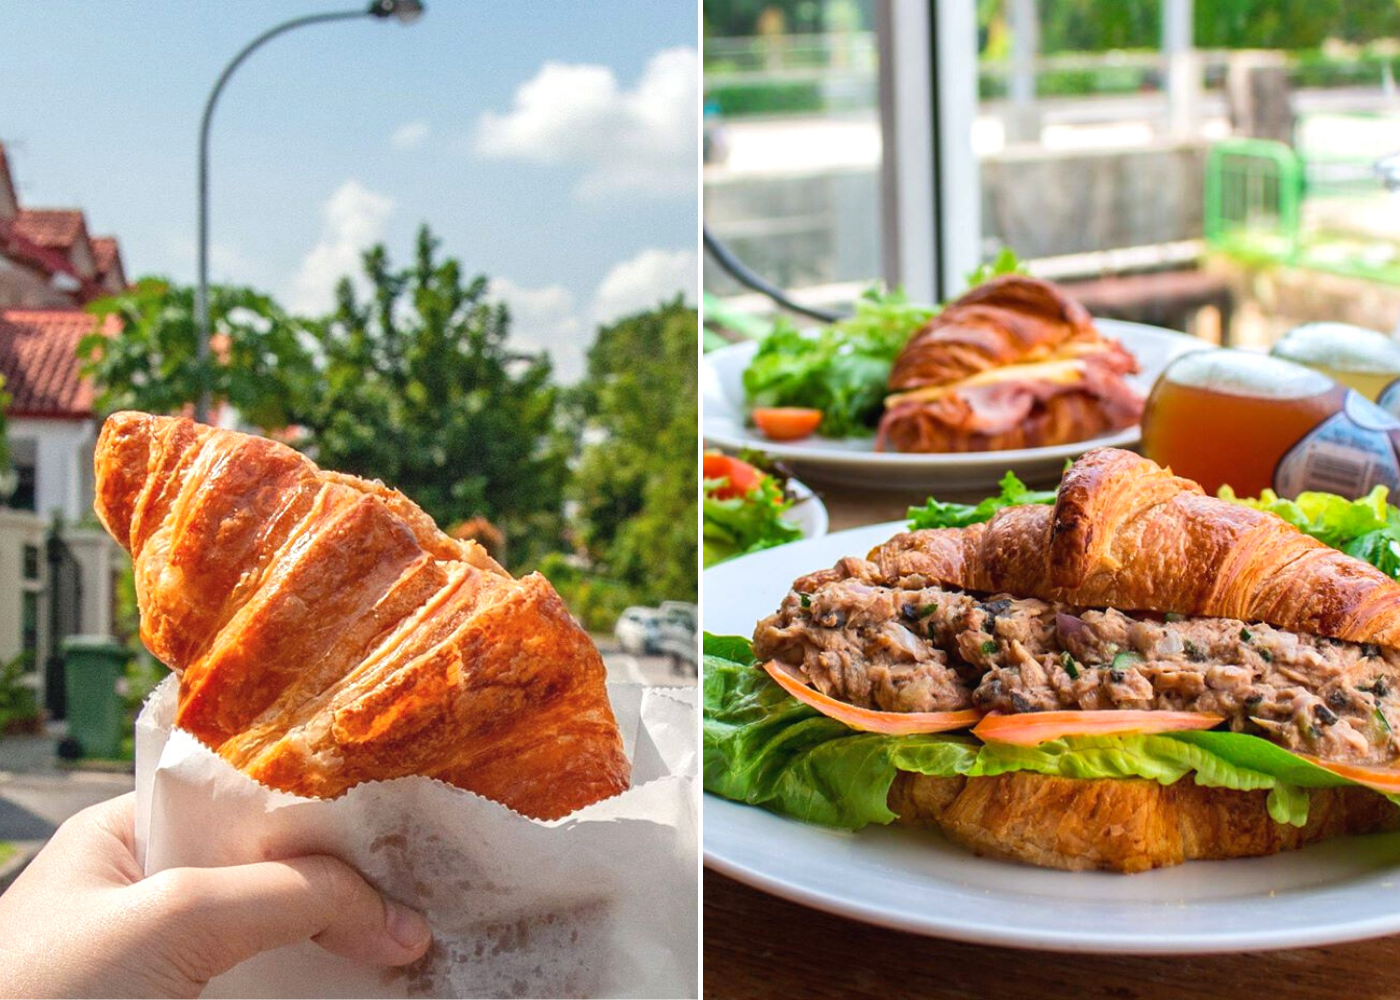 Best cafes for croissants in Singapore: Choupinette